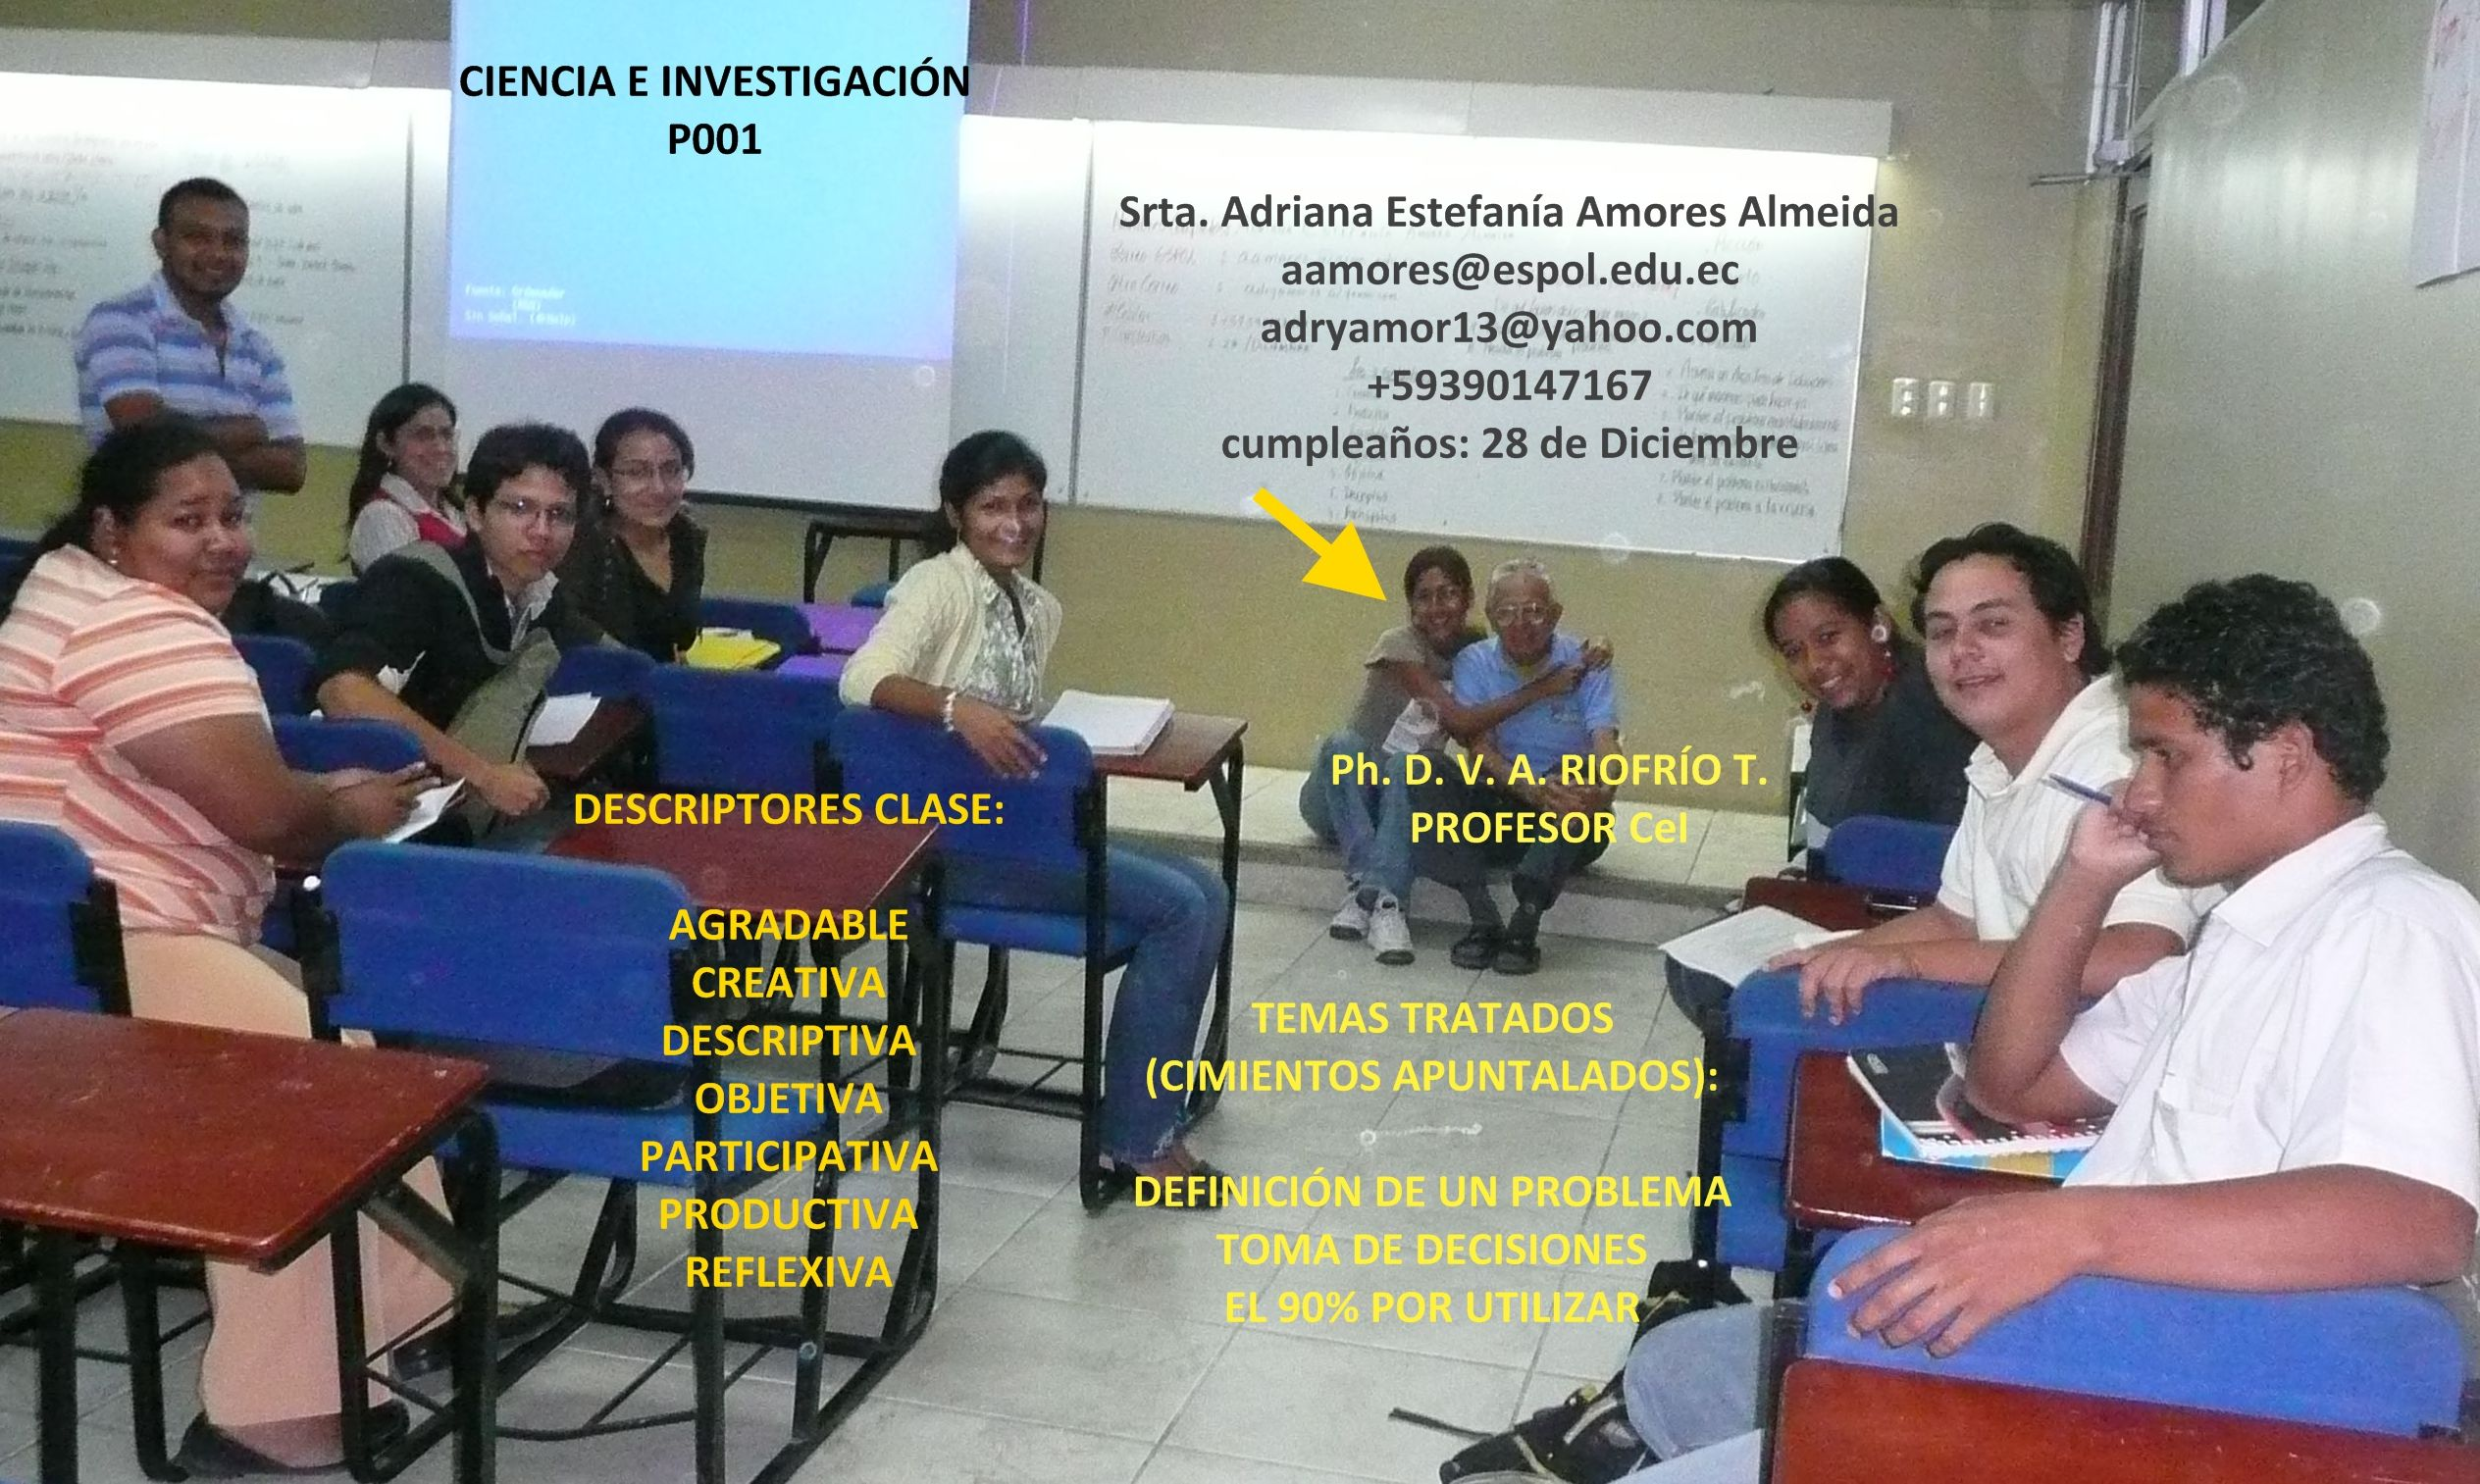 Srta. AdrianA E. Amores A.